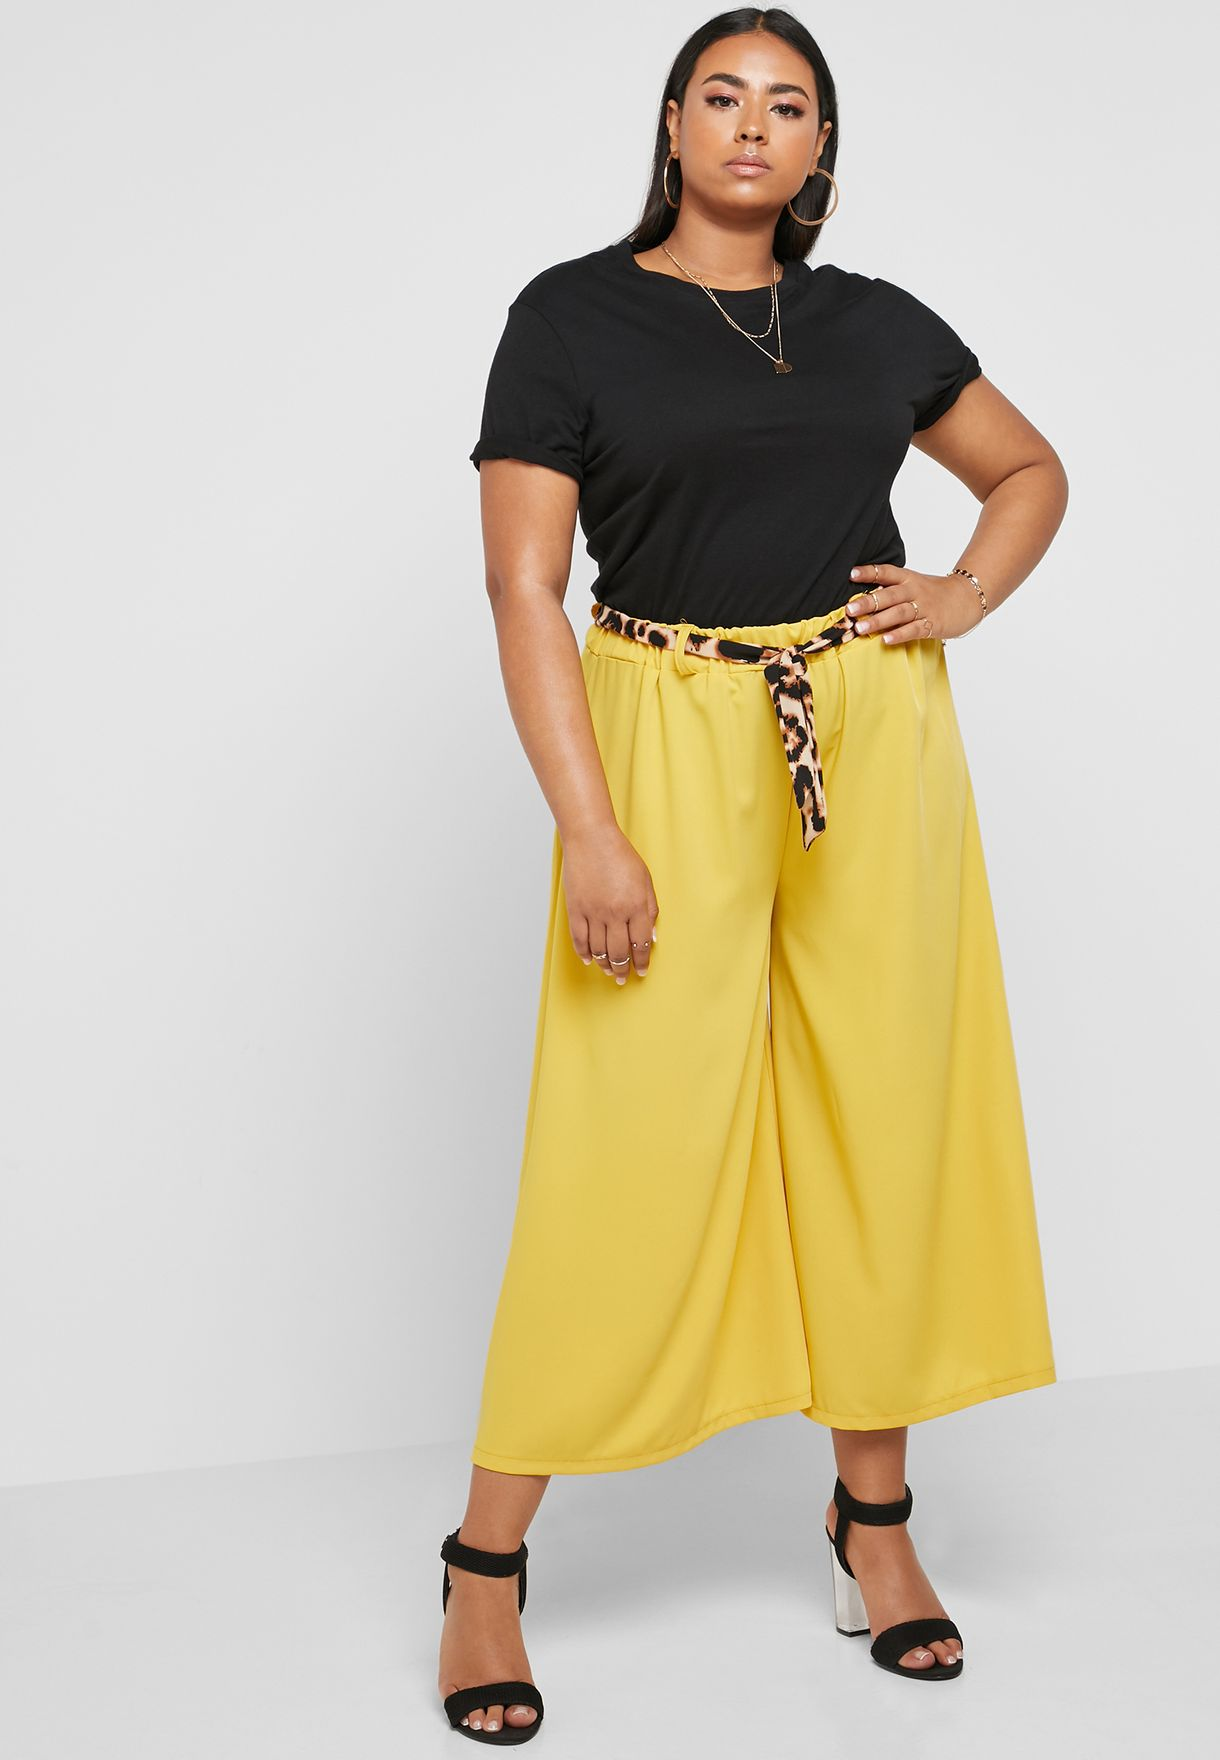 b5c5618362 Shop Ginger Plus yellow Leopard Print Self Tie Culottes NP04-9300 ...